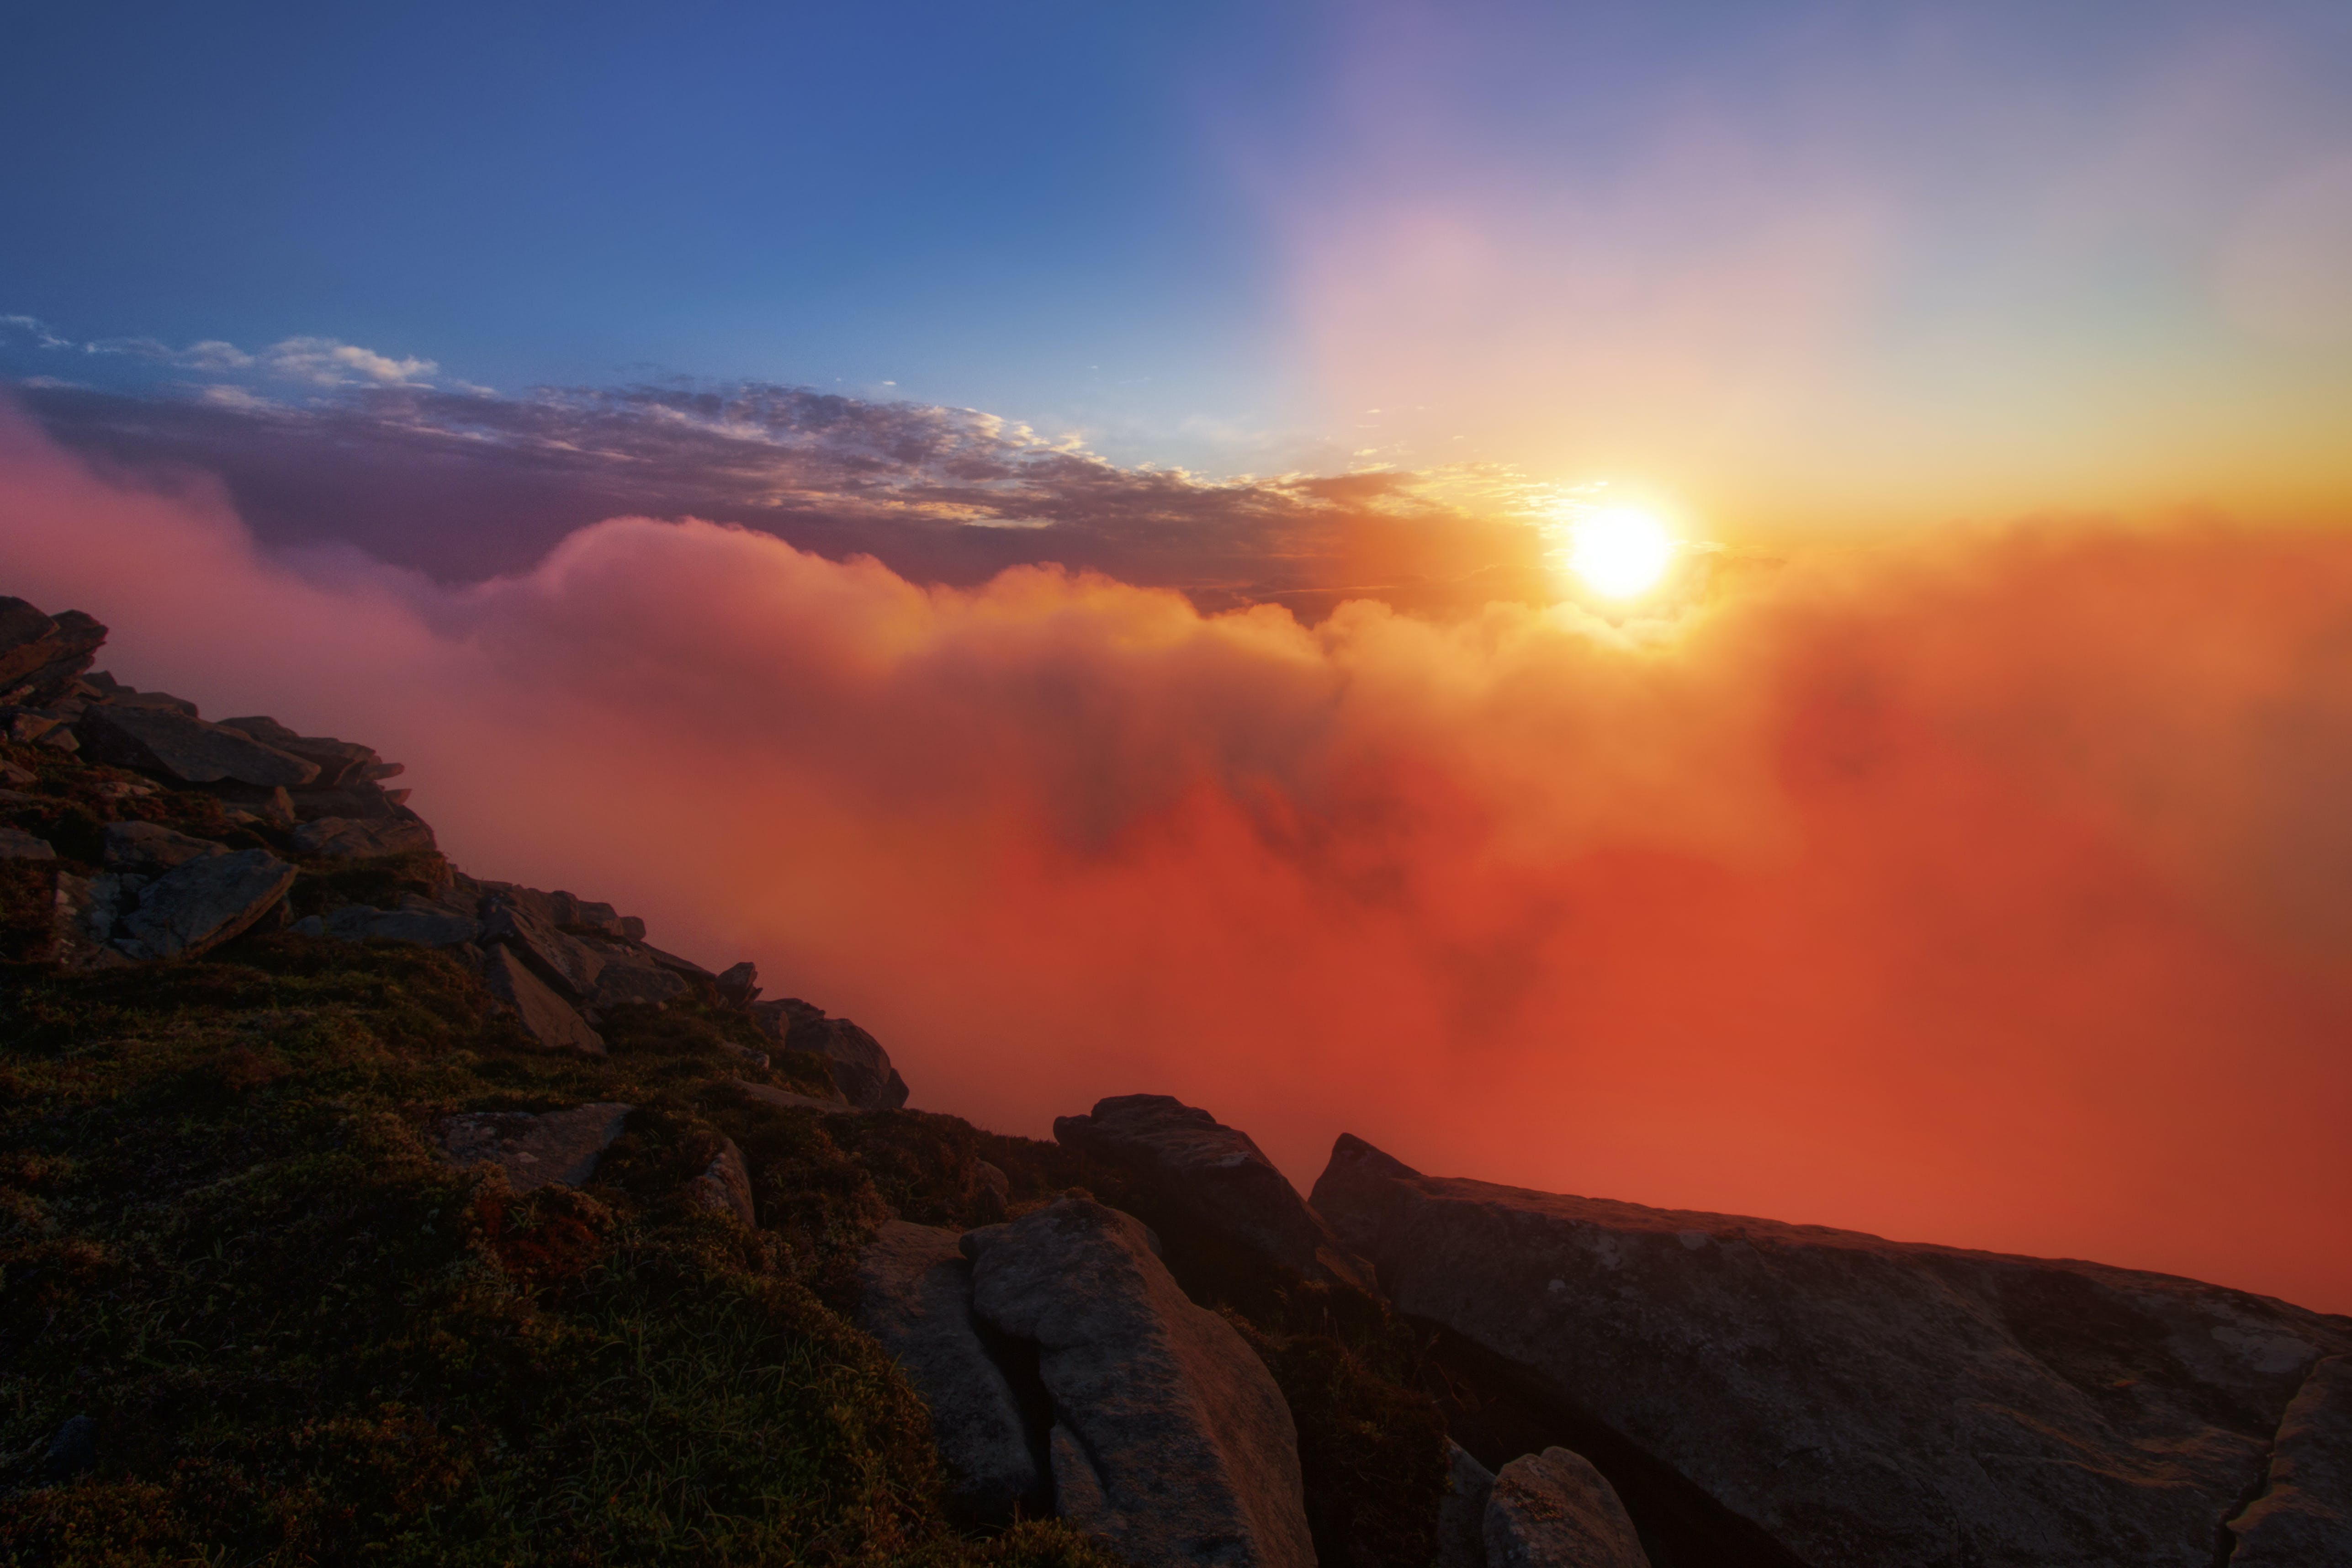 Sun Peaking Over Clouds